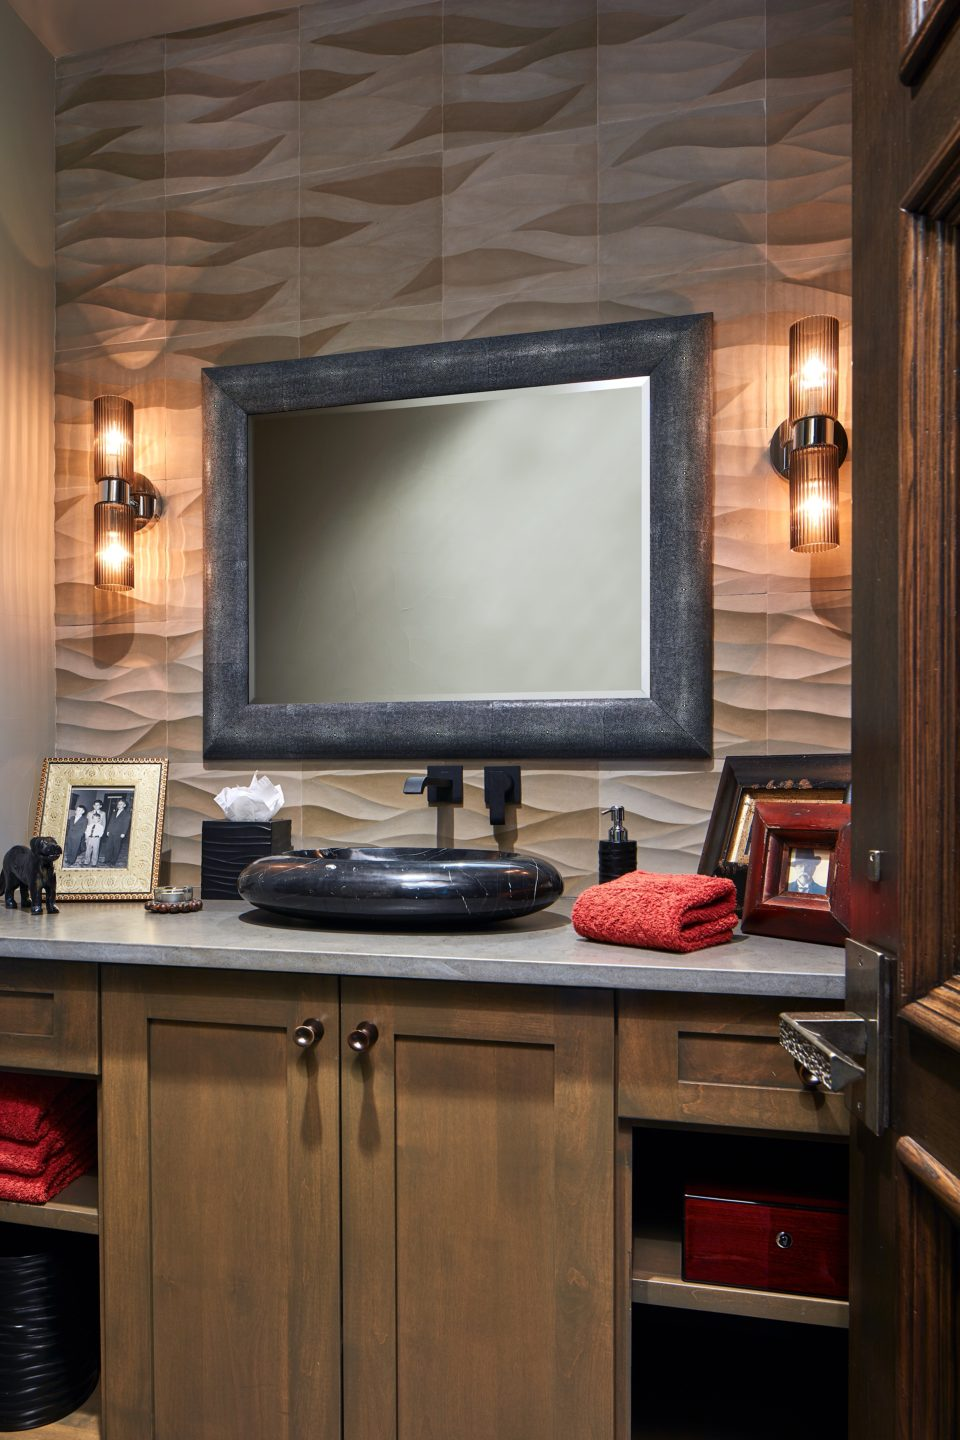 Masculine Bathroom with Black Vessel Sink and TV in Mirror